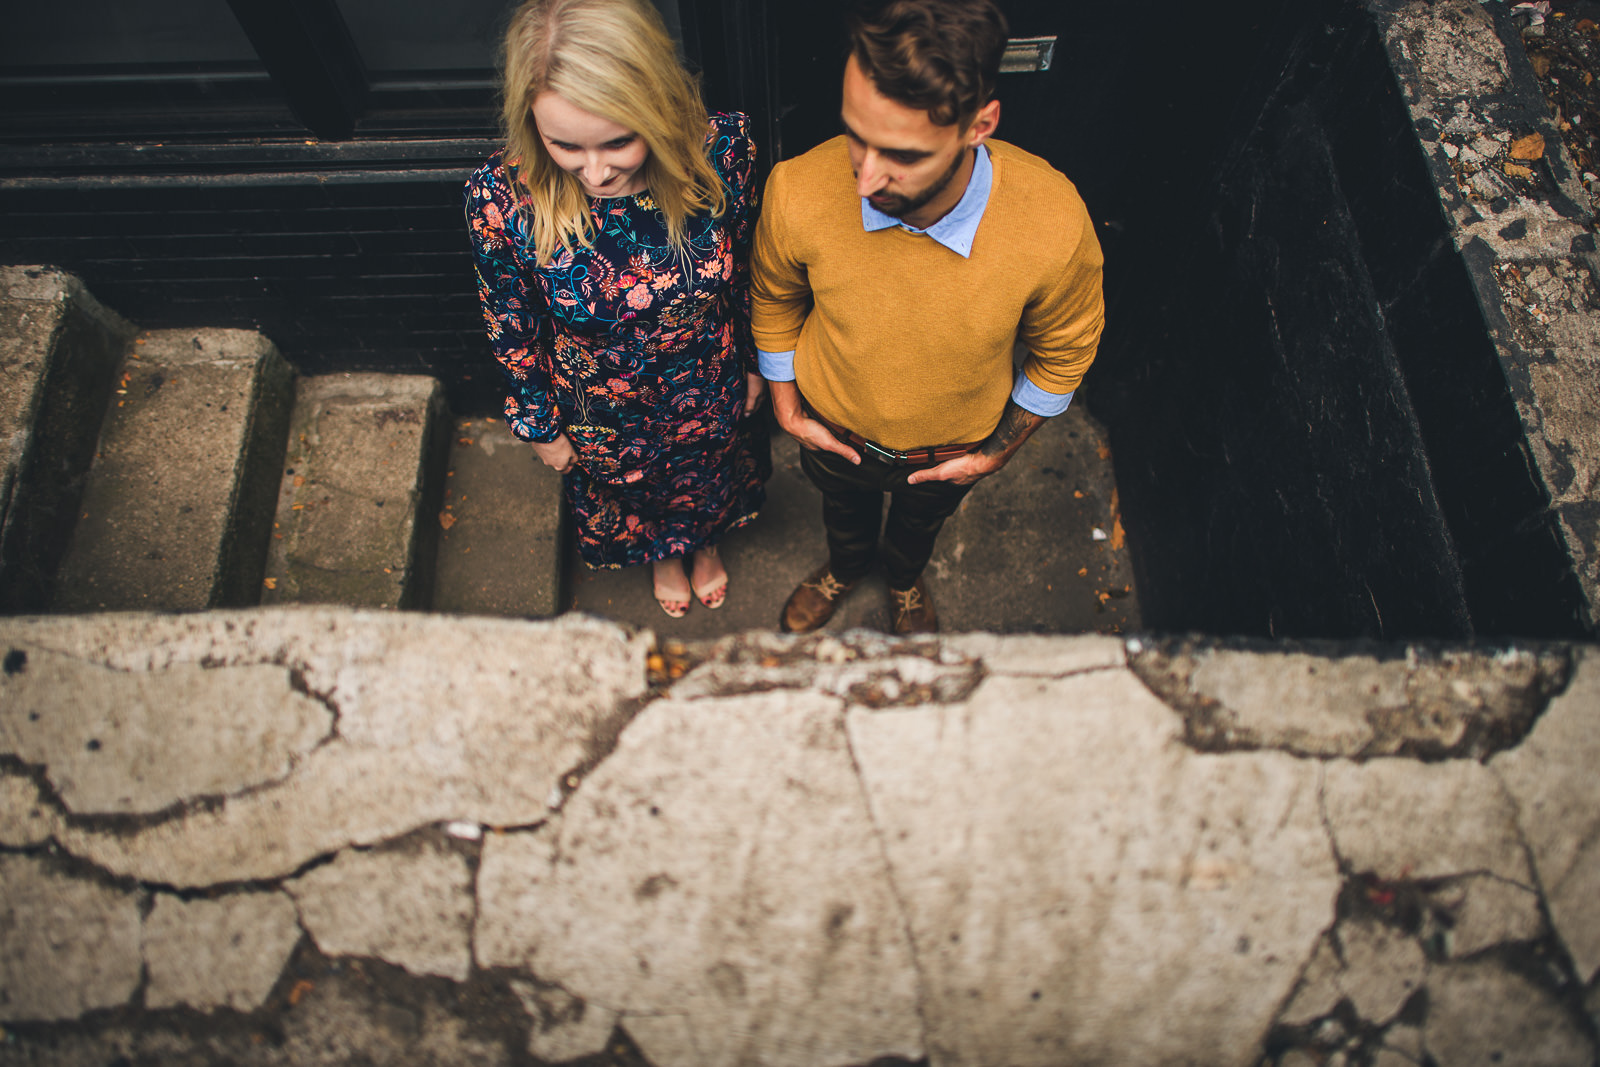 06 werid engagement photos - Wes Anderson Inspired Engagement Session in Wicker Park // Kelsey + Mark